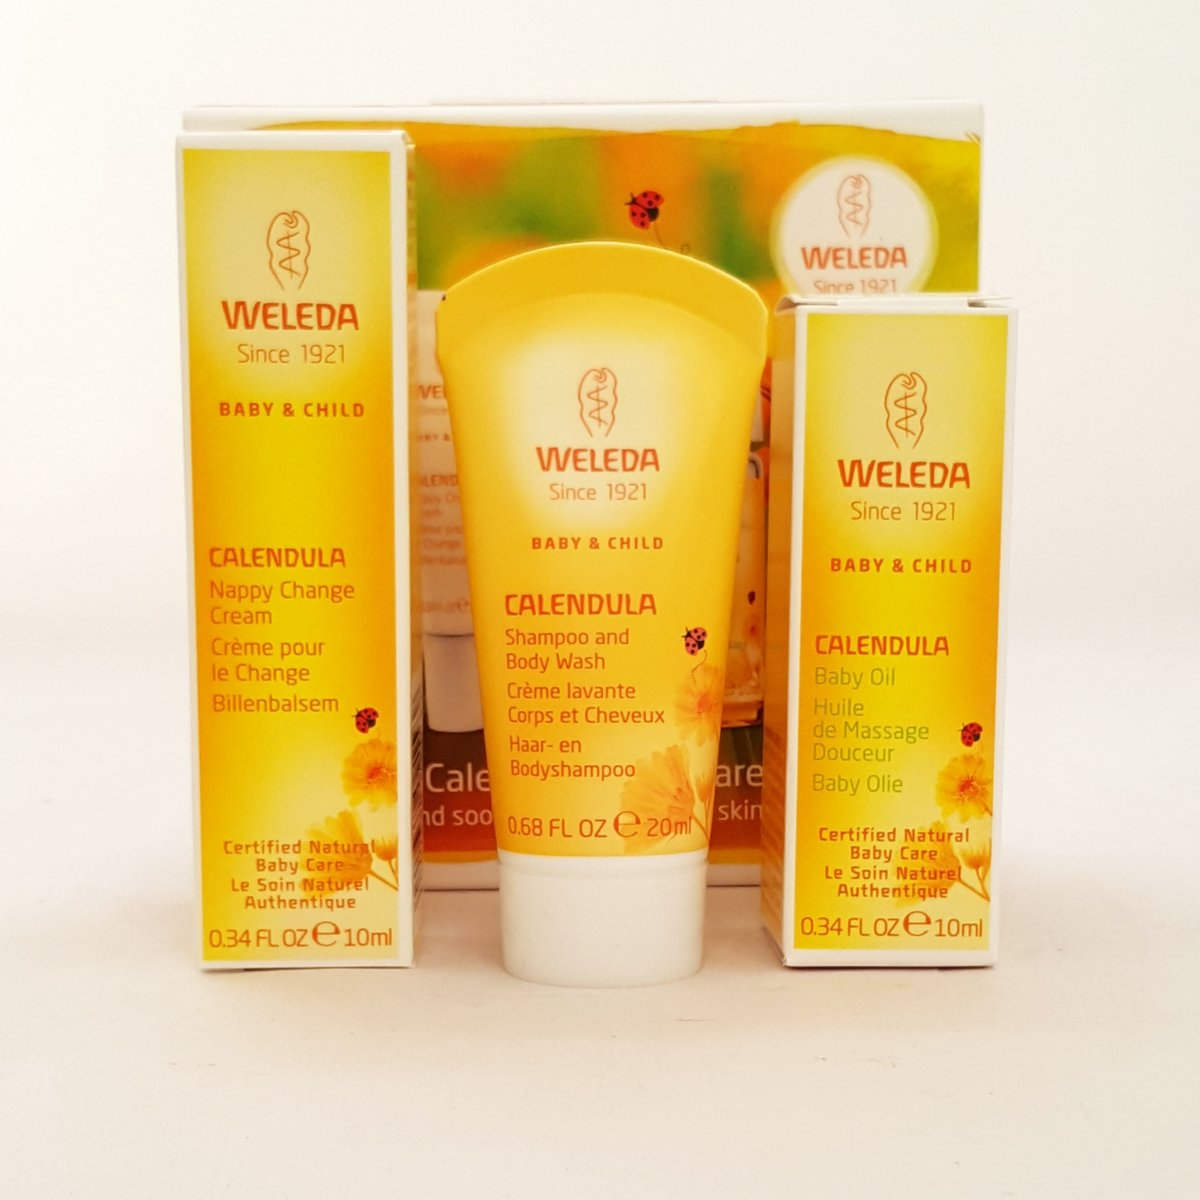 Weleda Baby Care Product Image